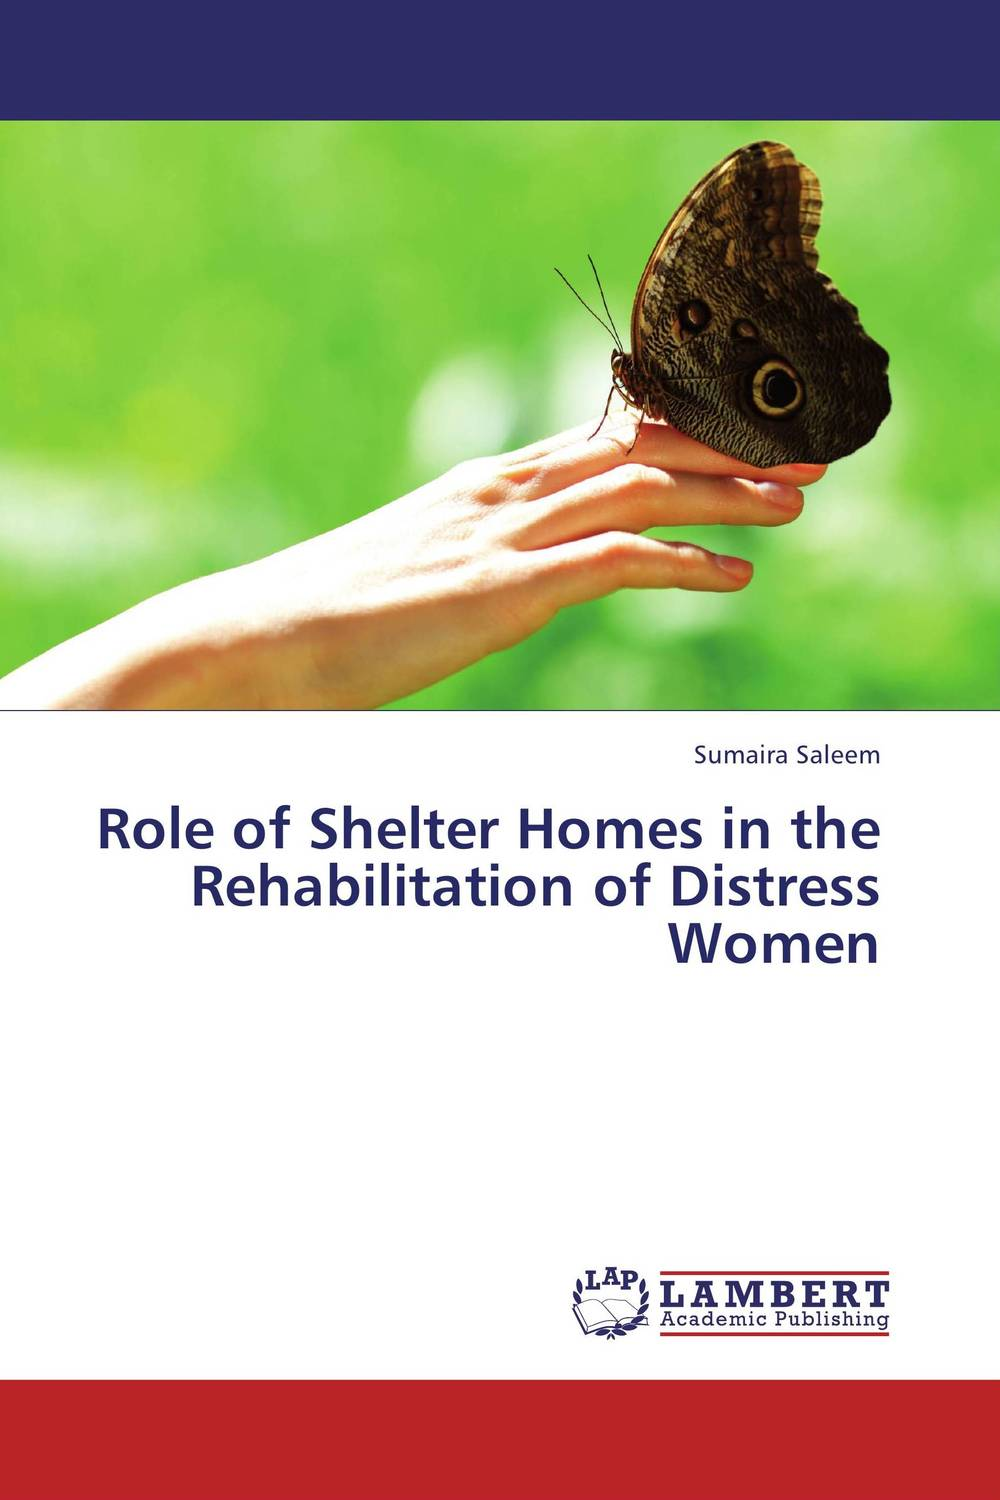 Role of Shelter Homes in the Rehabilitation of Distress Women